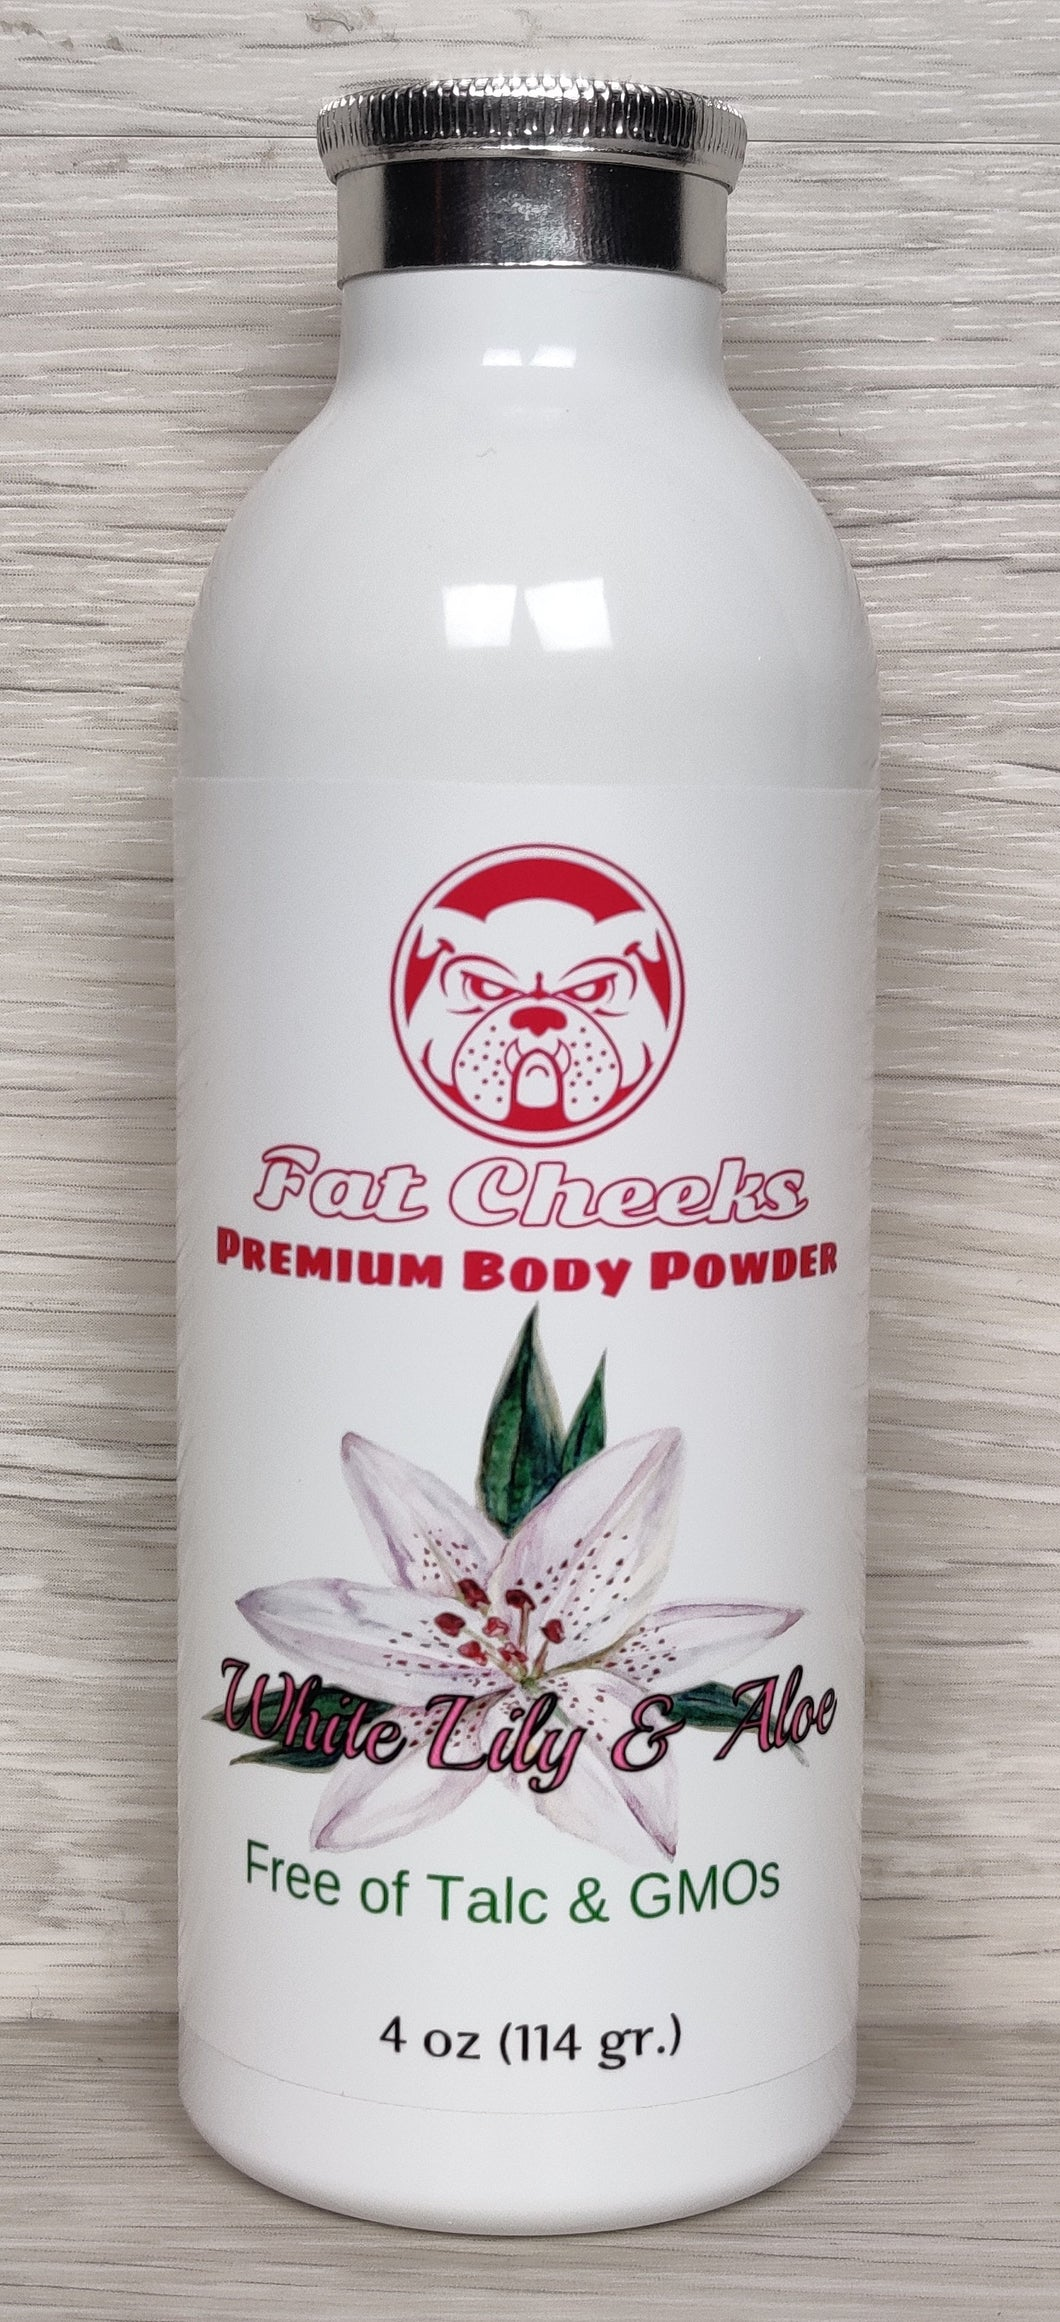 White Lily & Aloe Fat Cheeks talc free Body Powder, Ball Powder, Foot Powder, Dry Shampoo, barbershop and spray tan dry down powder